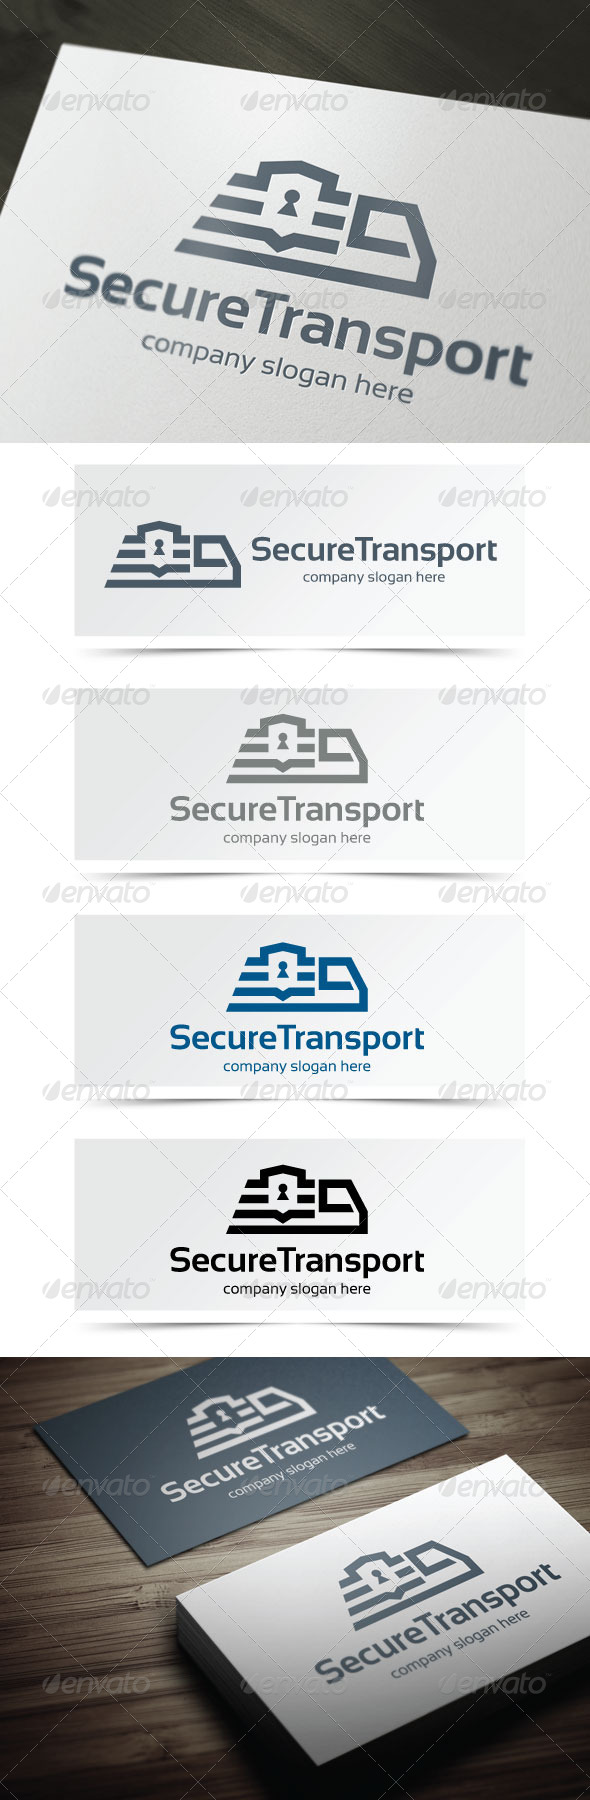 GraphicRiver Secure Transport 5375679